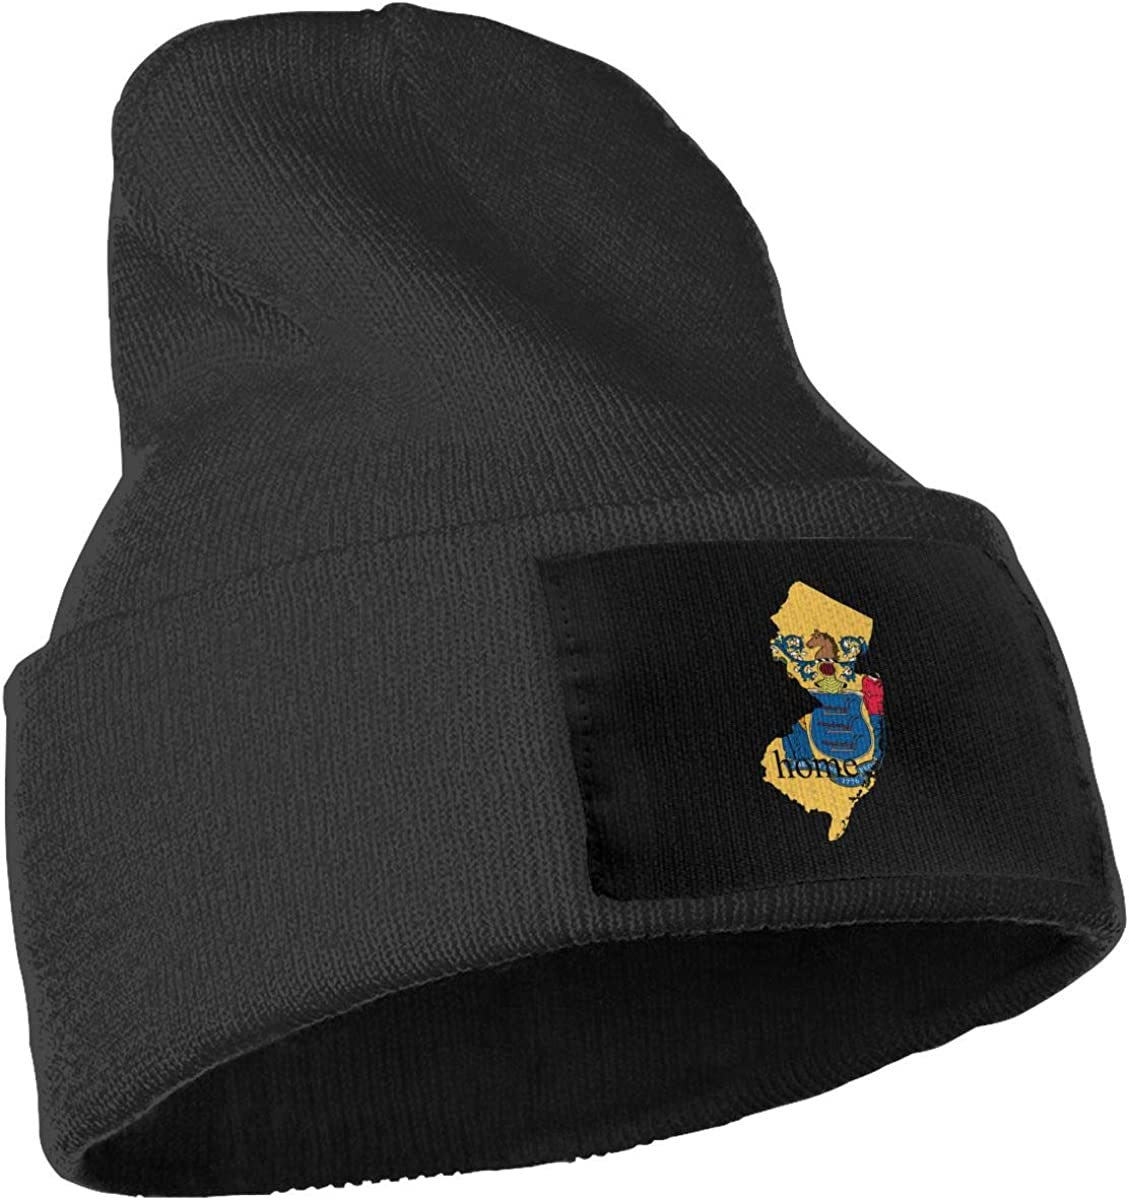 JustQbob1 New Jersey is My Home Outdoor Winter Warm Knit Beanie Hat Cap for Men Women